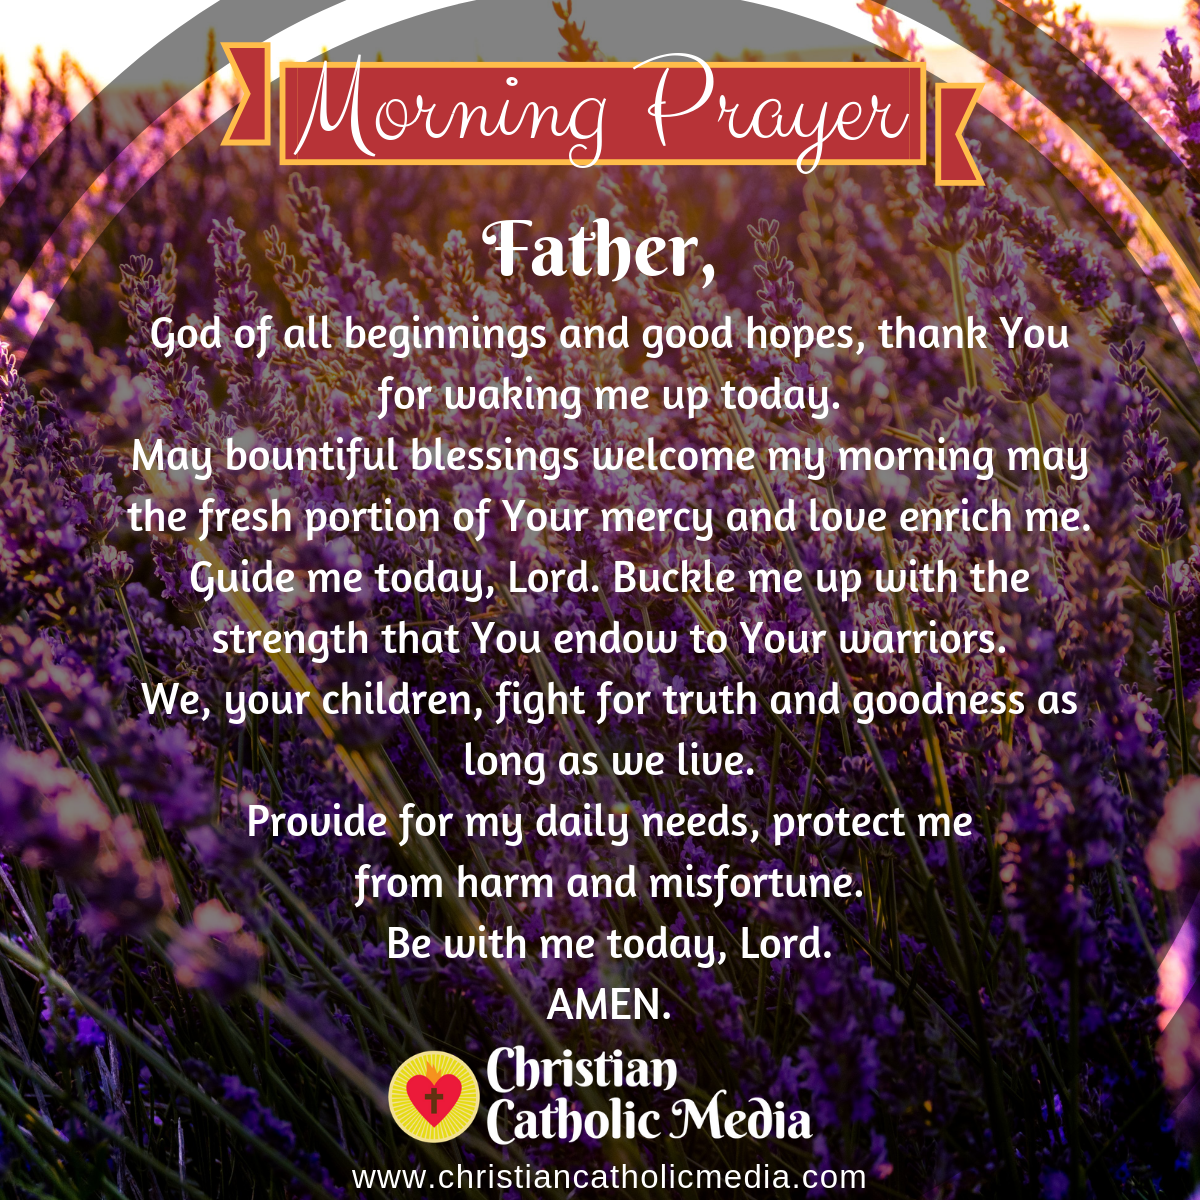 Catholic Morning Prayer Wednesday 11-11-2020